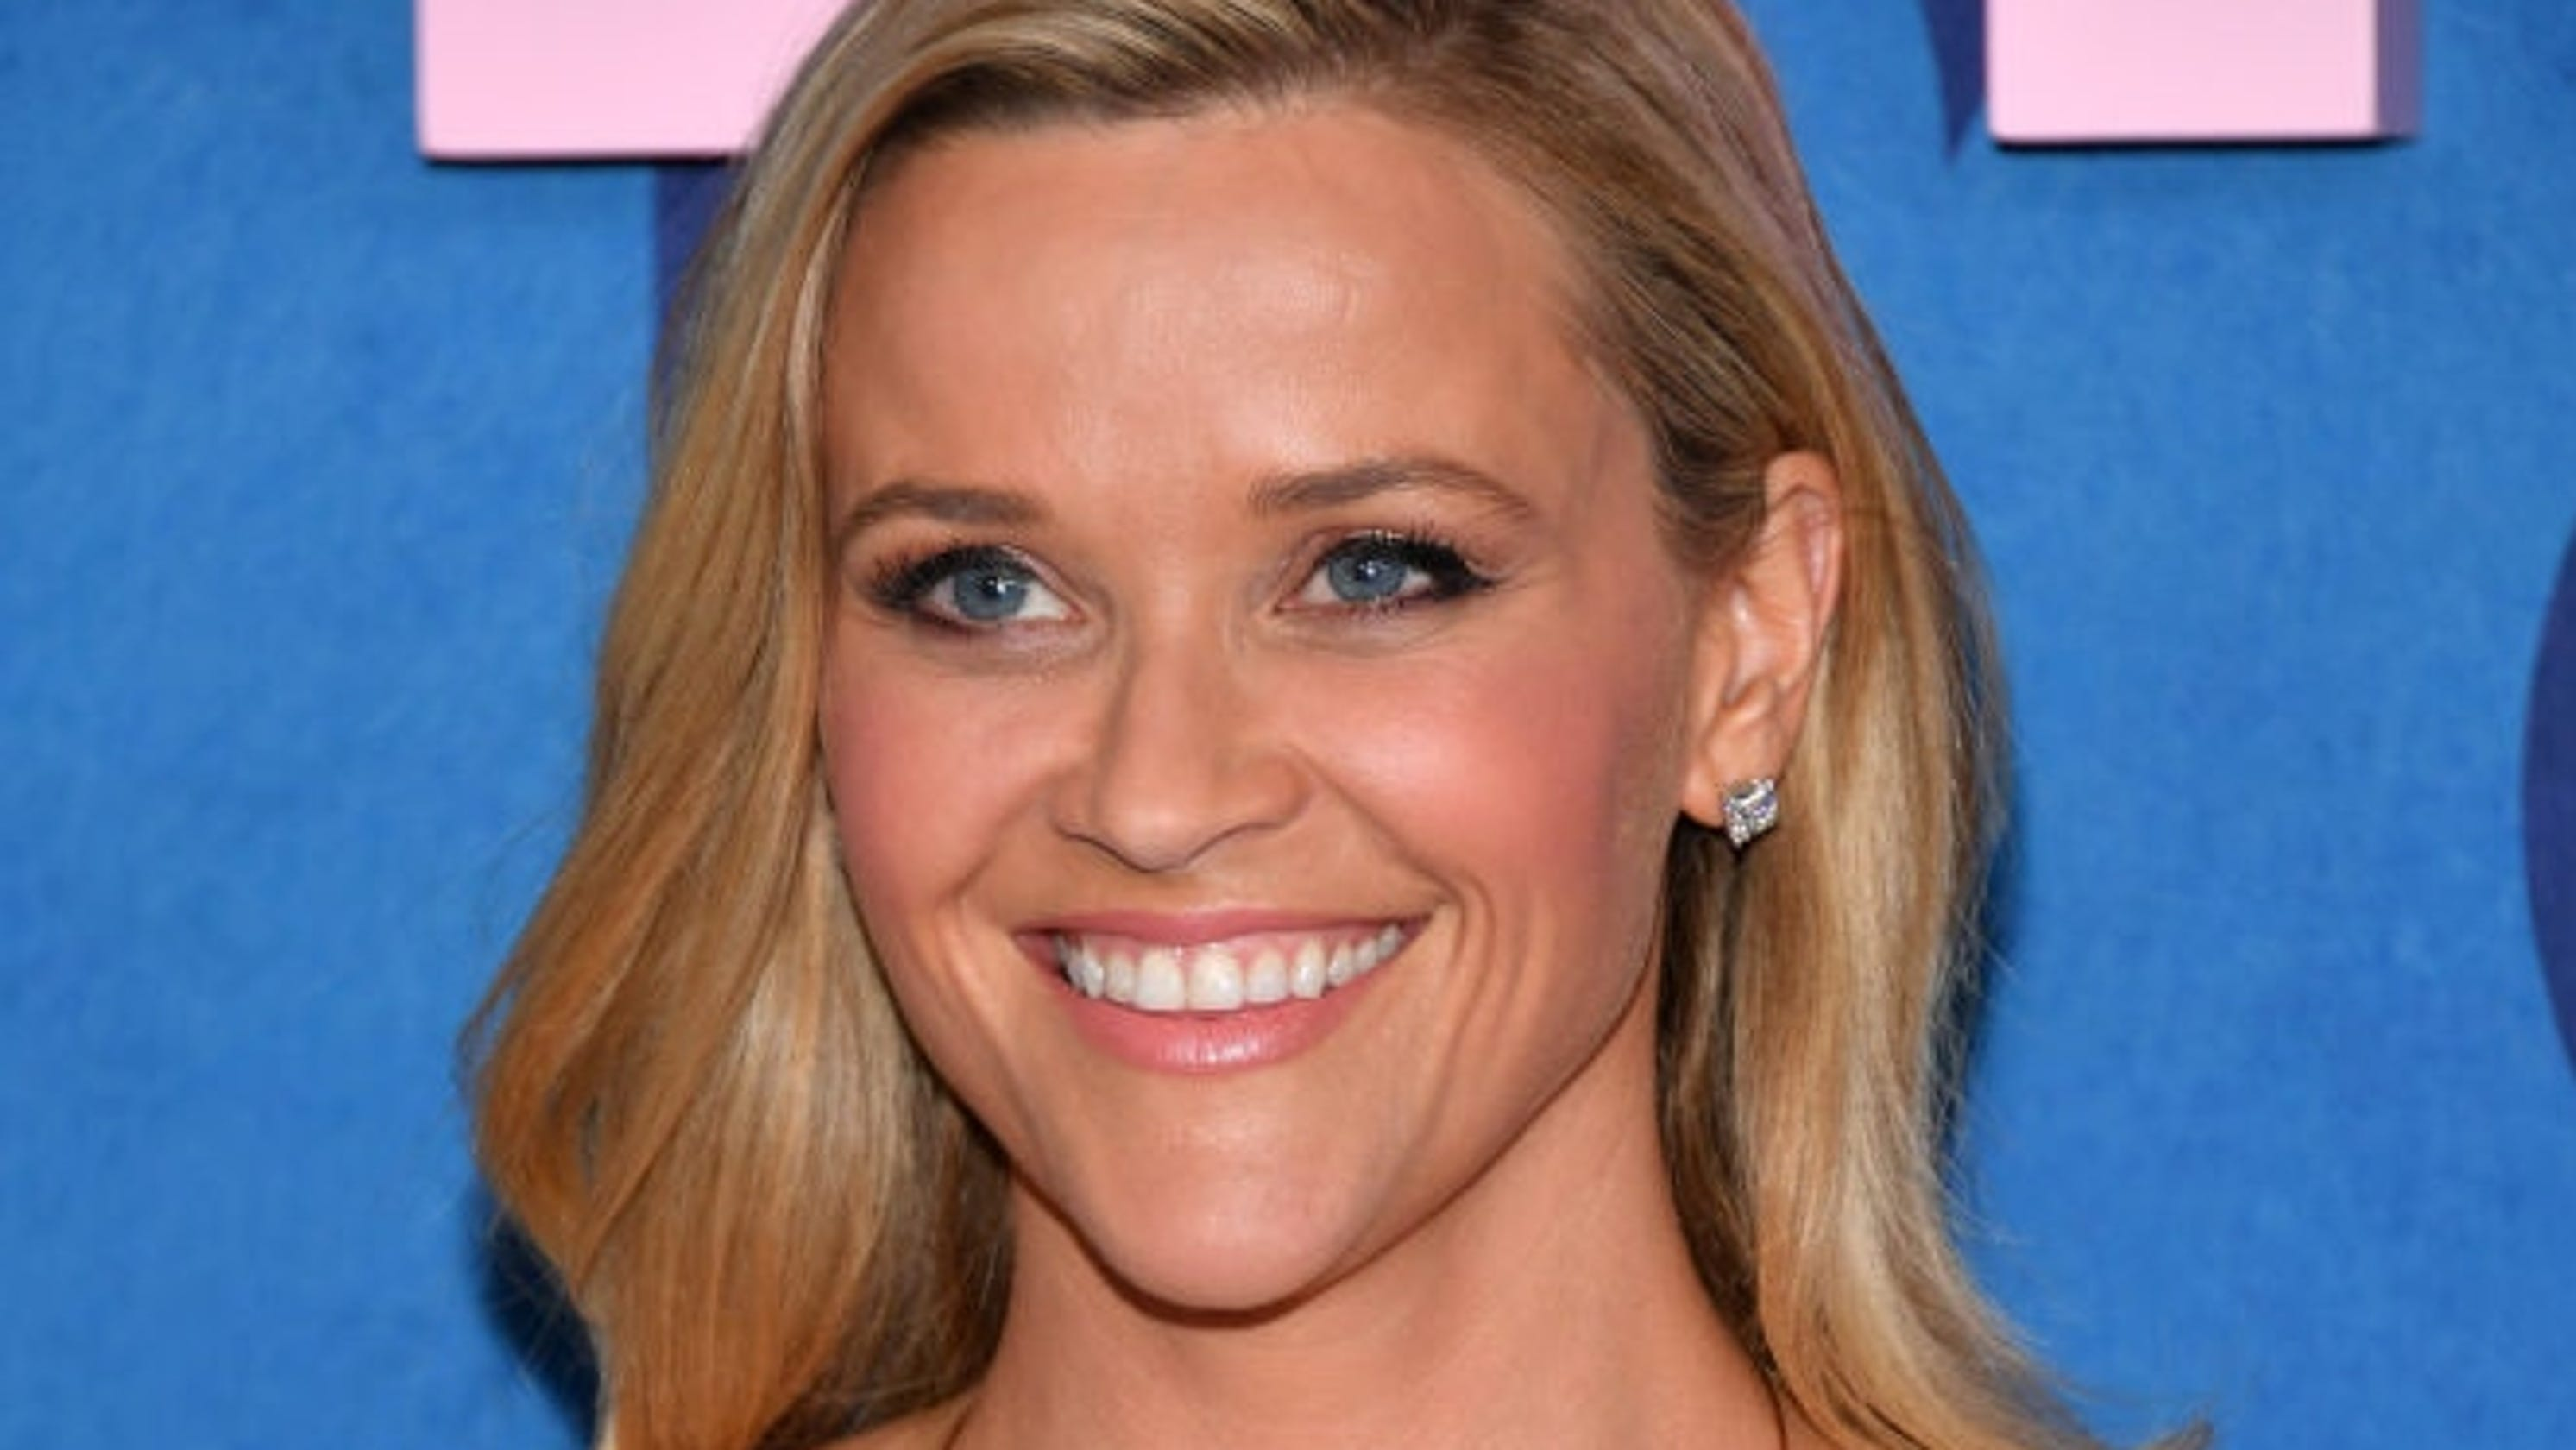 Reese Witherspoon is twinning with older brother John in rare picture: 'Love you big bro'